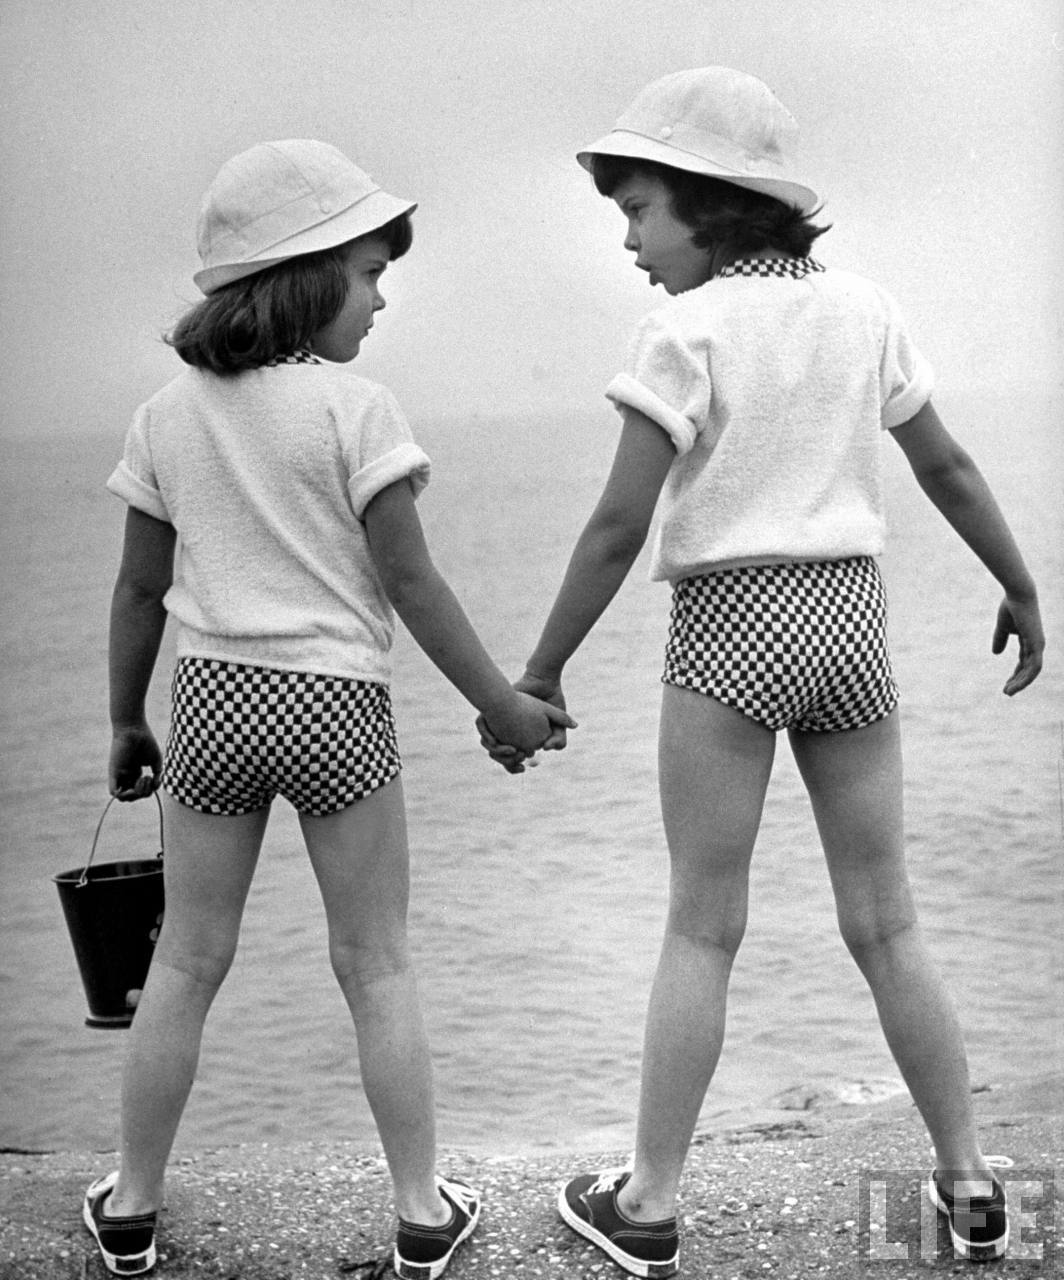 California, 1950. By Nina Leen